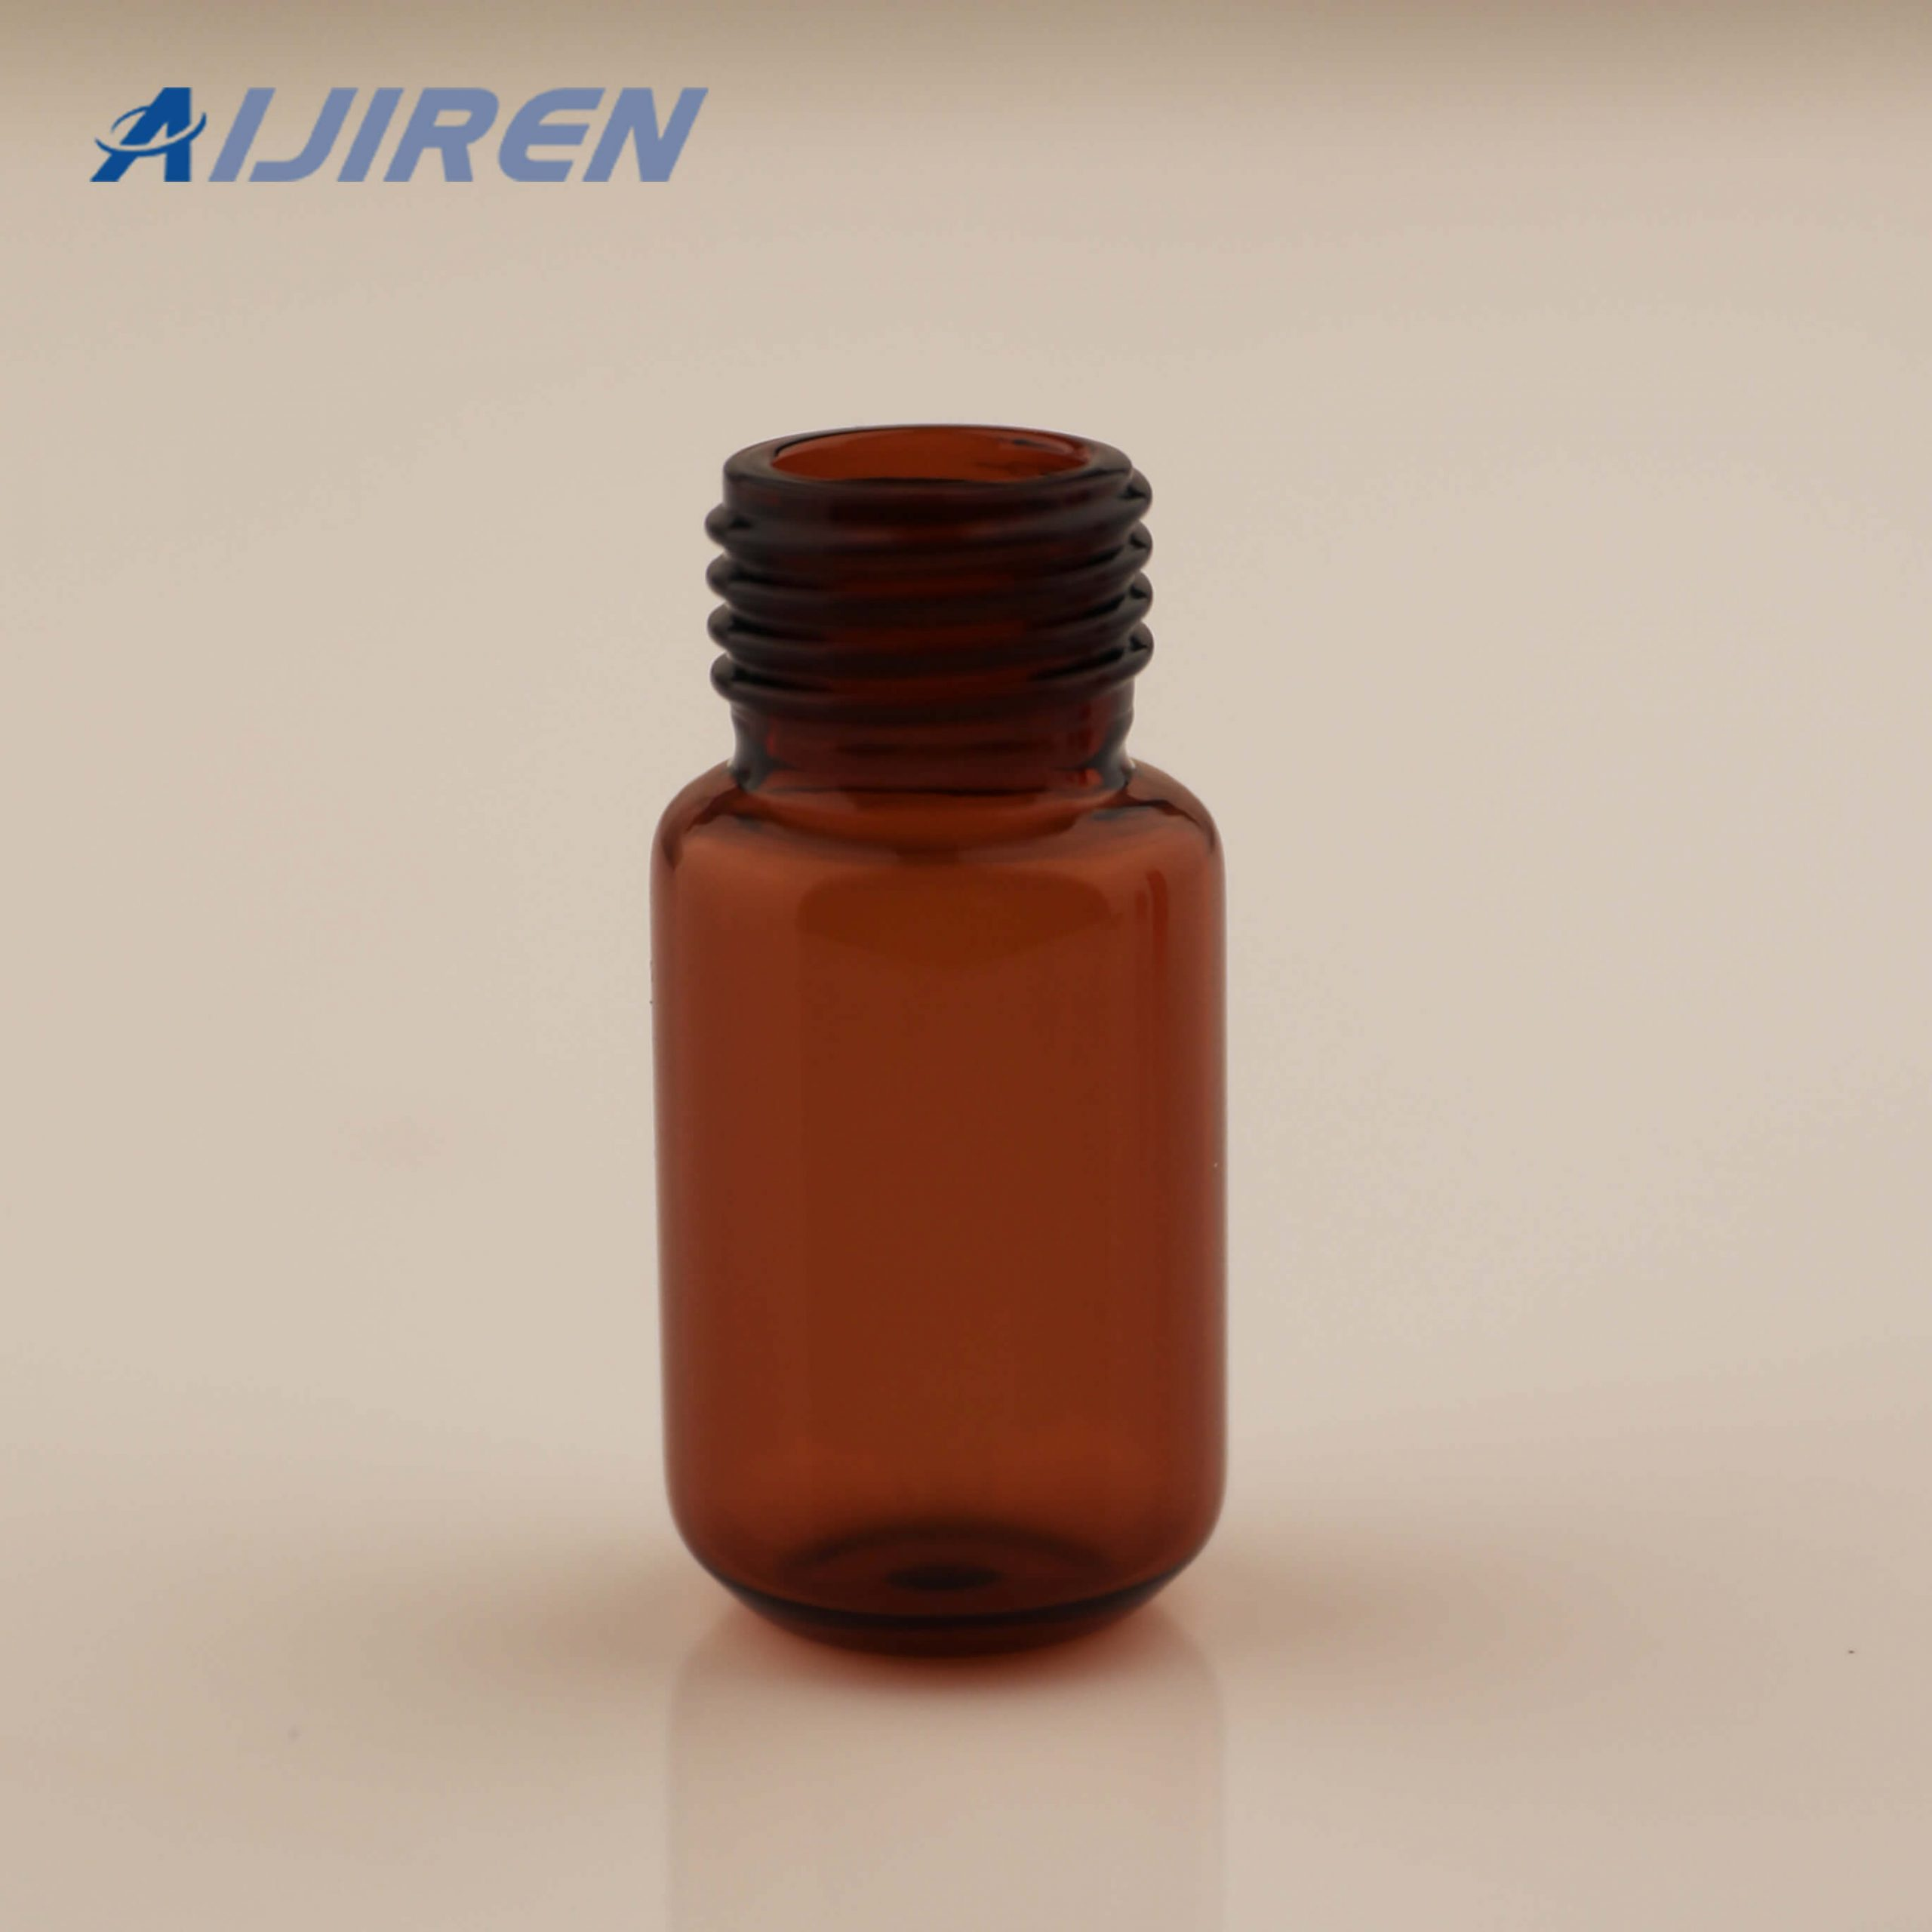 10ml Amber Glass Headspace Vials for Agilent